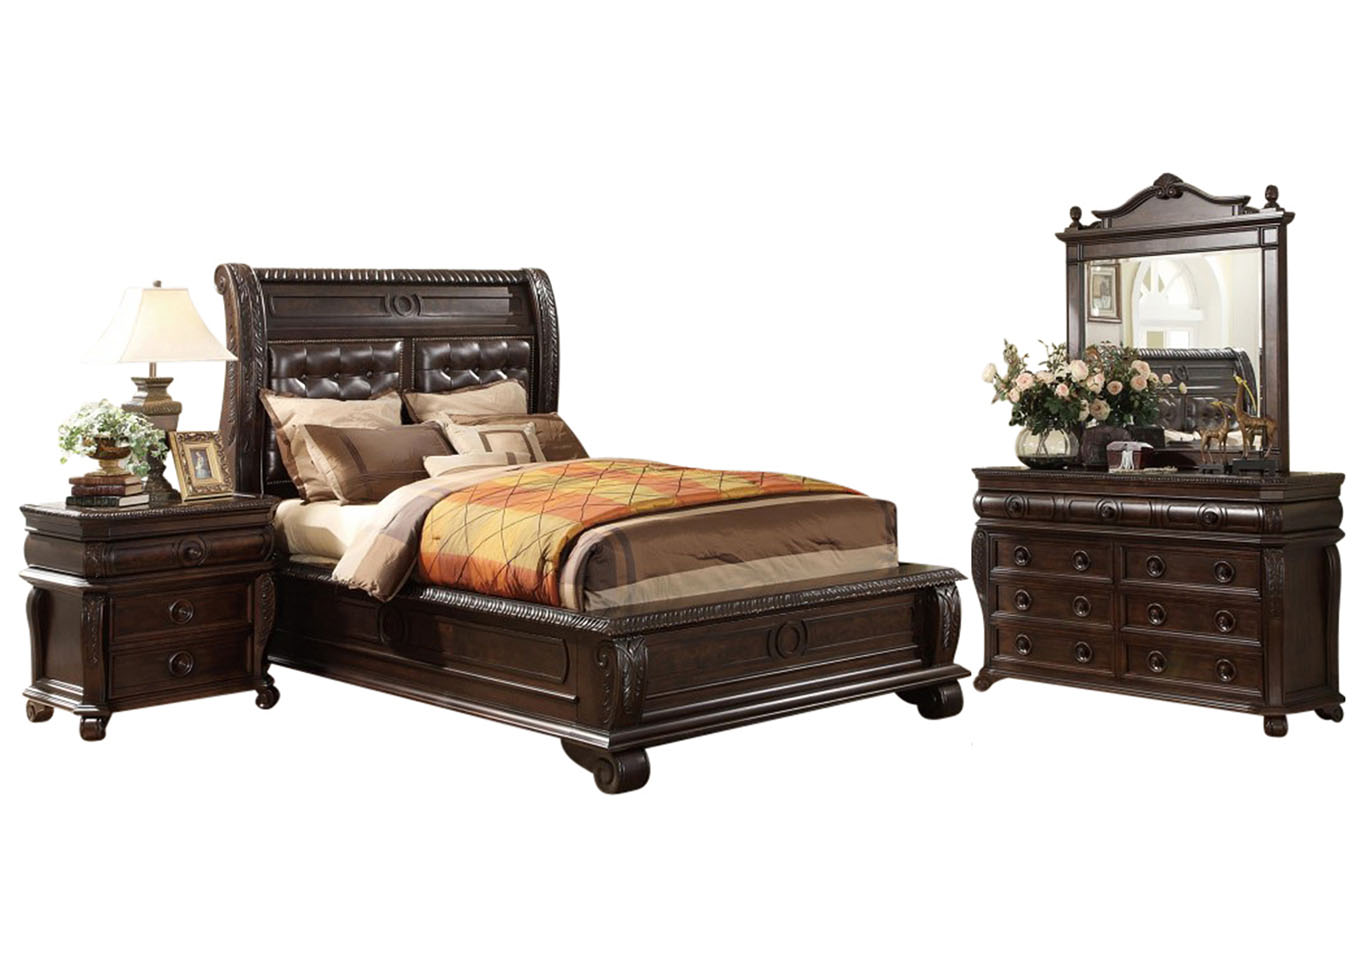 500+ Ivan Smith King Size Bedroom Sets Free